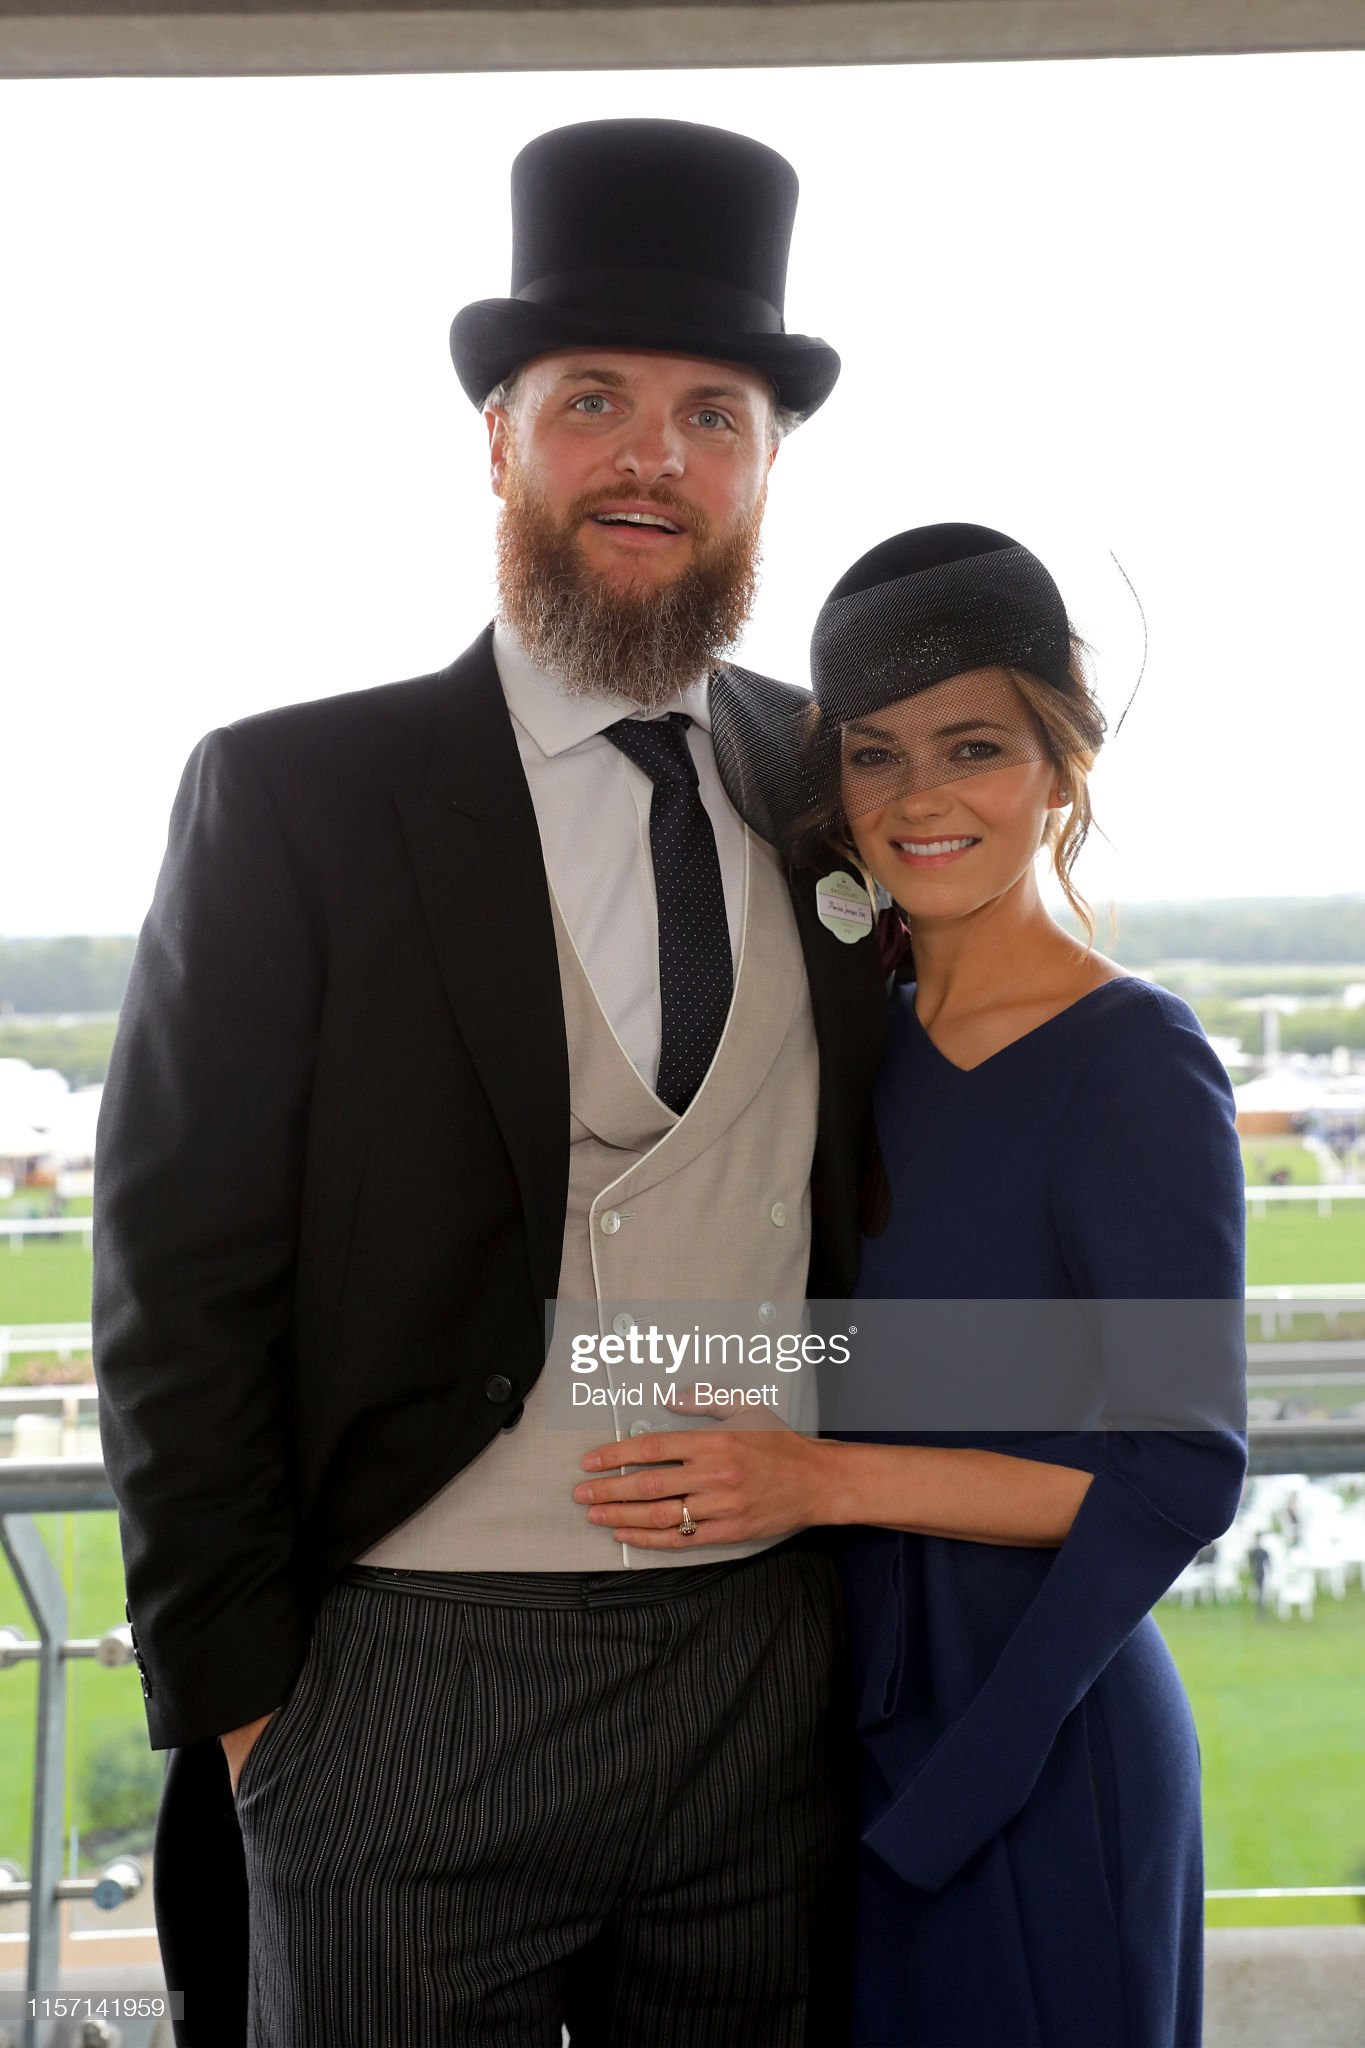 marius-jensen-and-kara-tointon-on-day-3-of-royal-ascot-at-ascot-on-picture-id1157141959?s=2048x2048